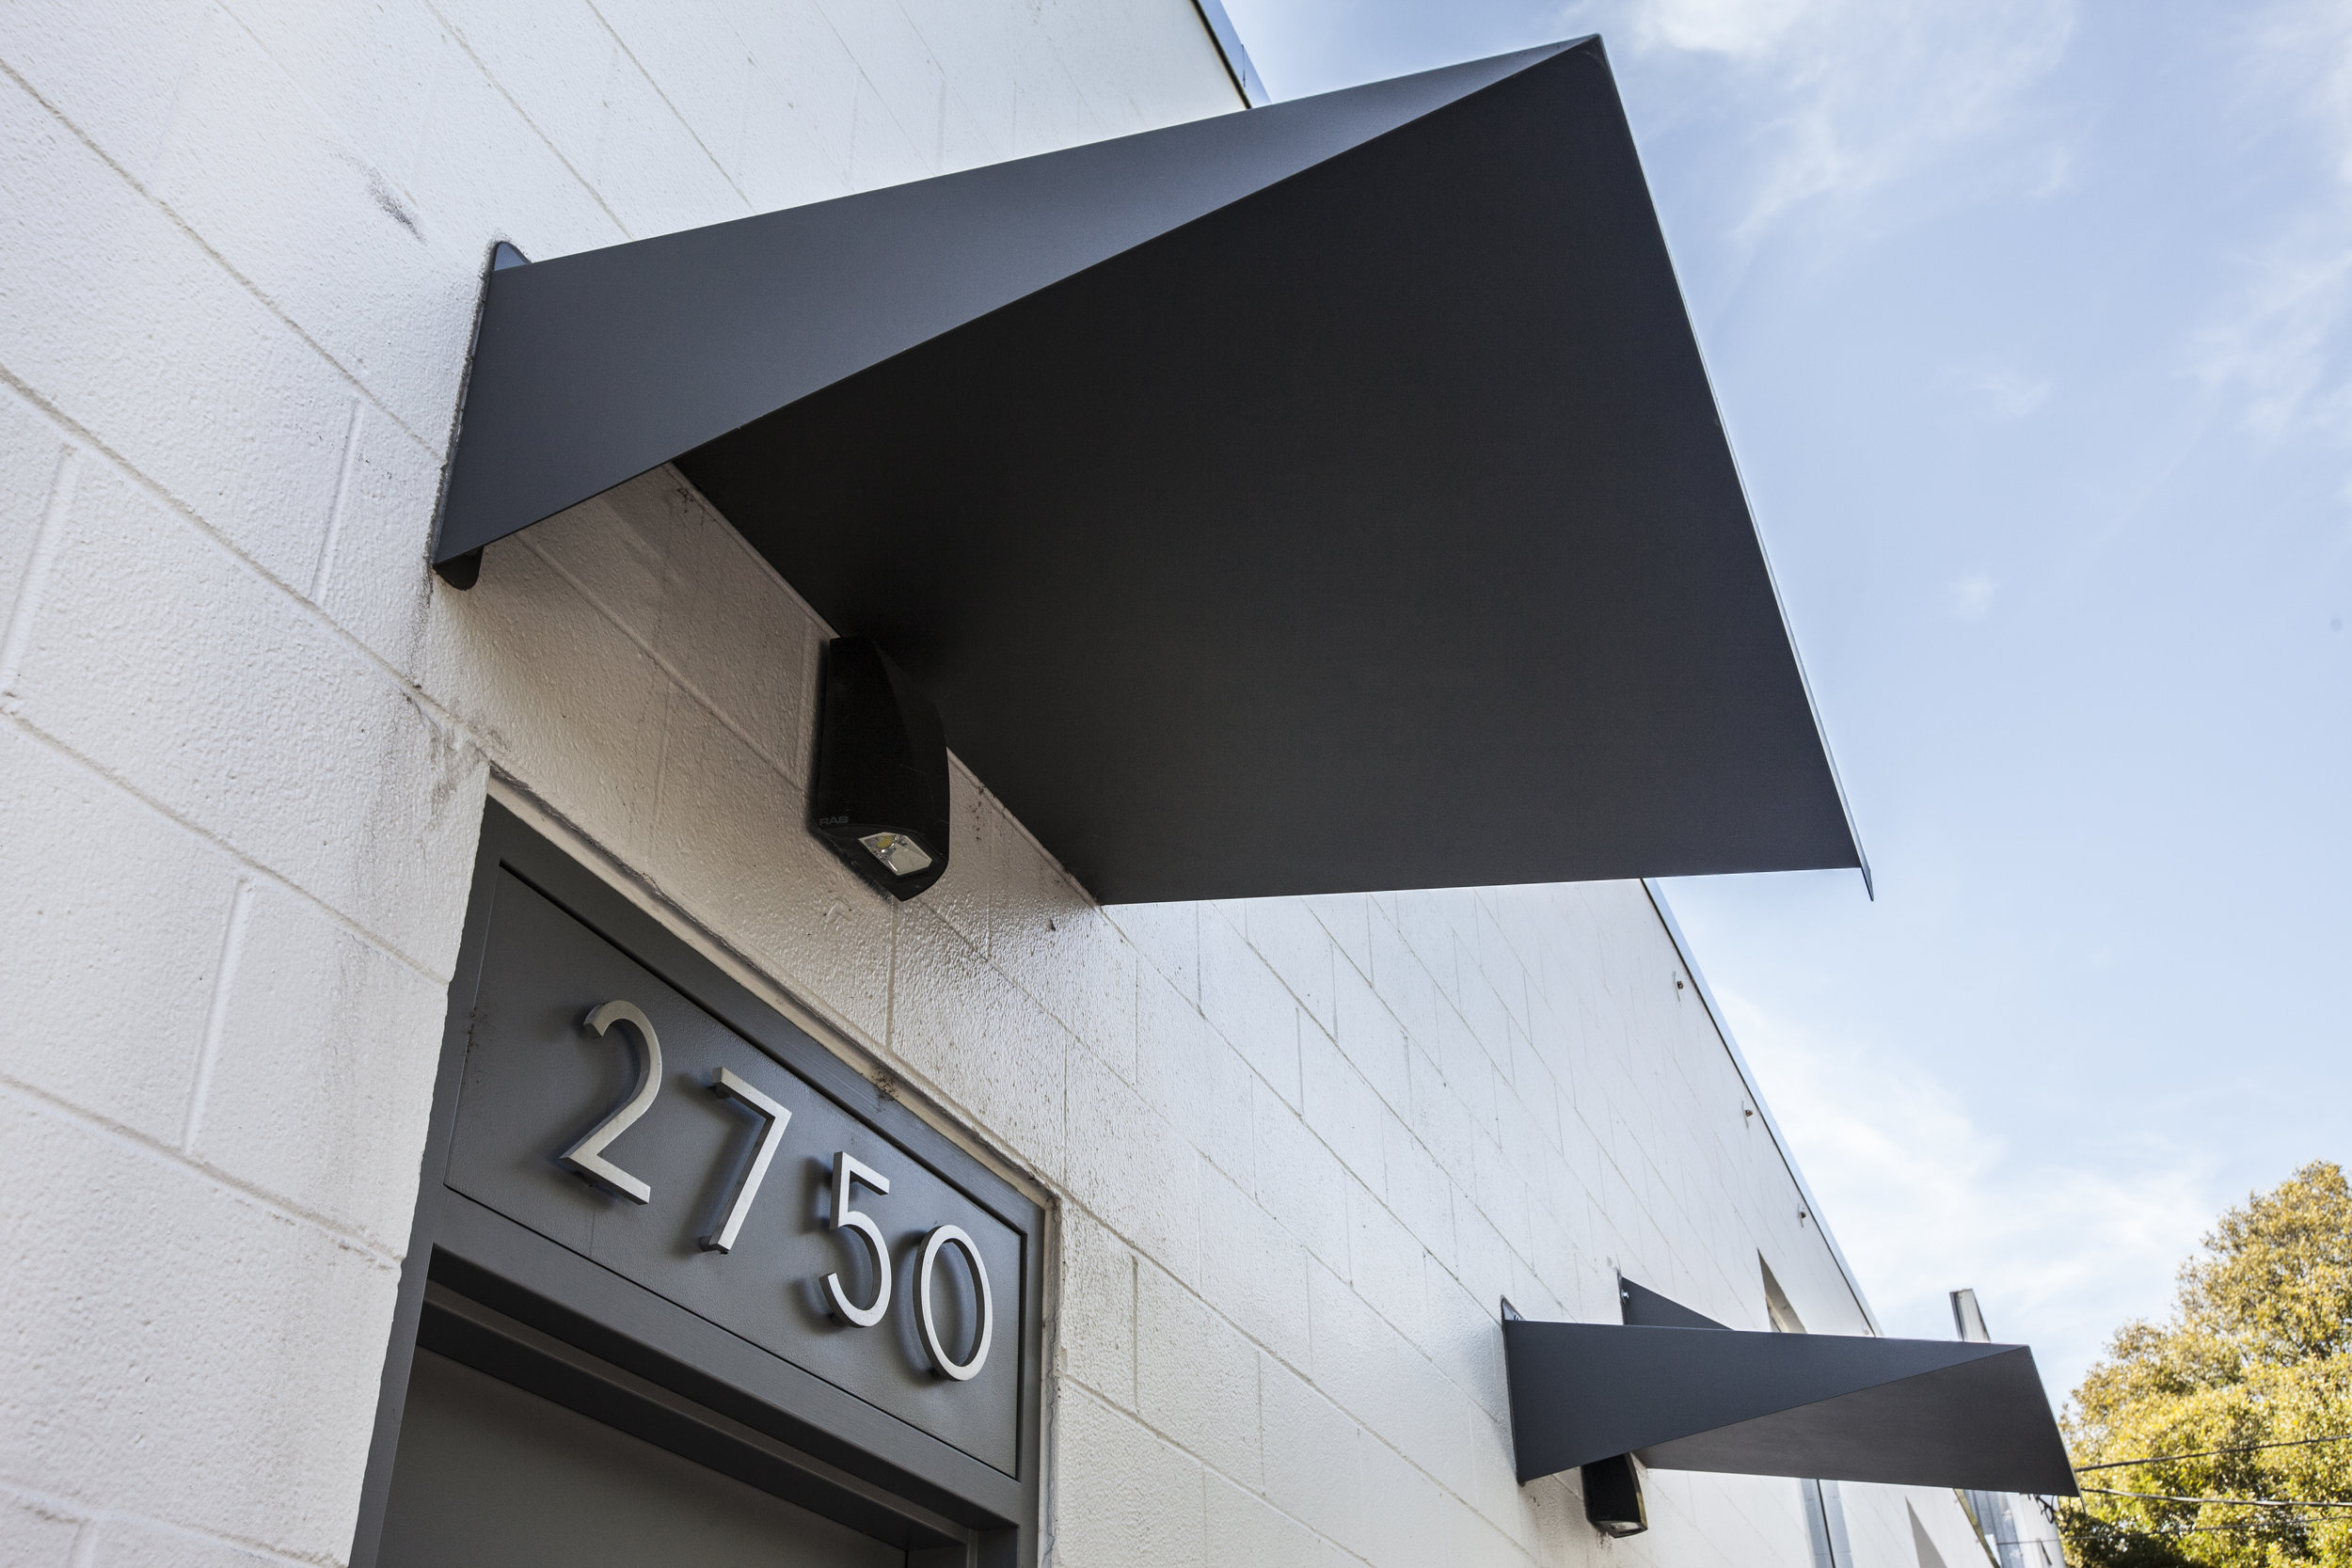 Clean discrete numbers over the doors and with custom bent steel awnings. These subtle details are discrete as this is a private building.